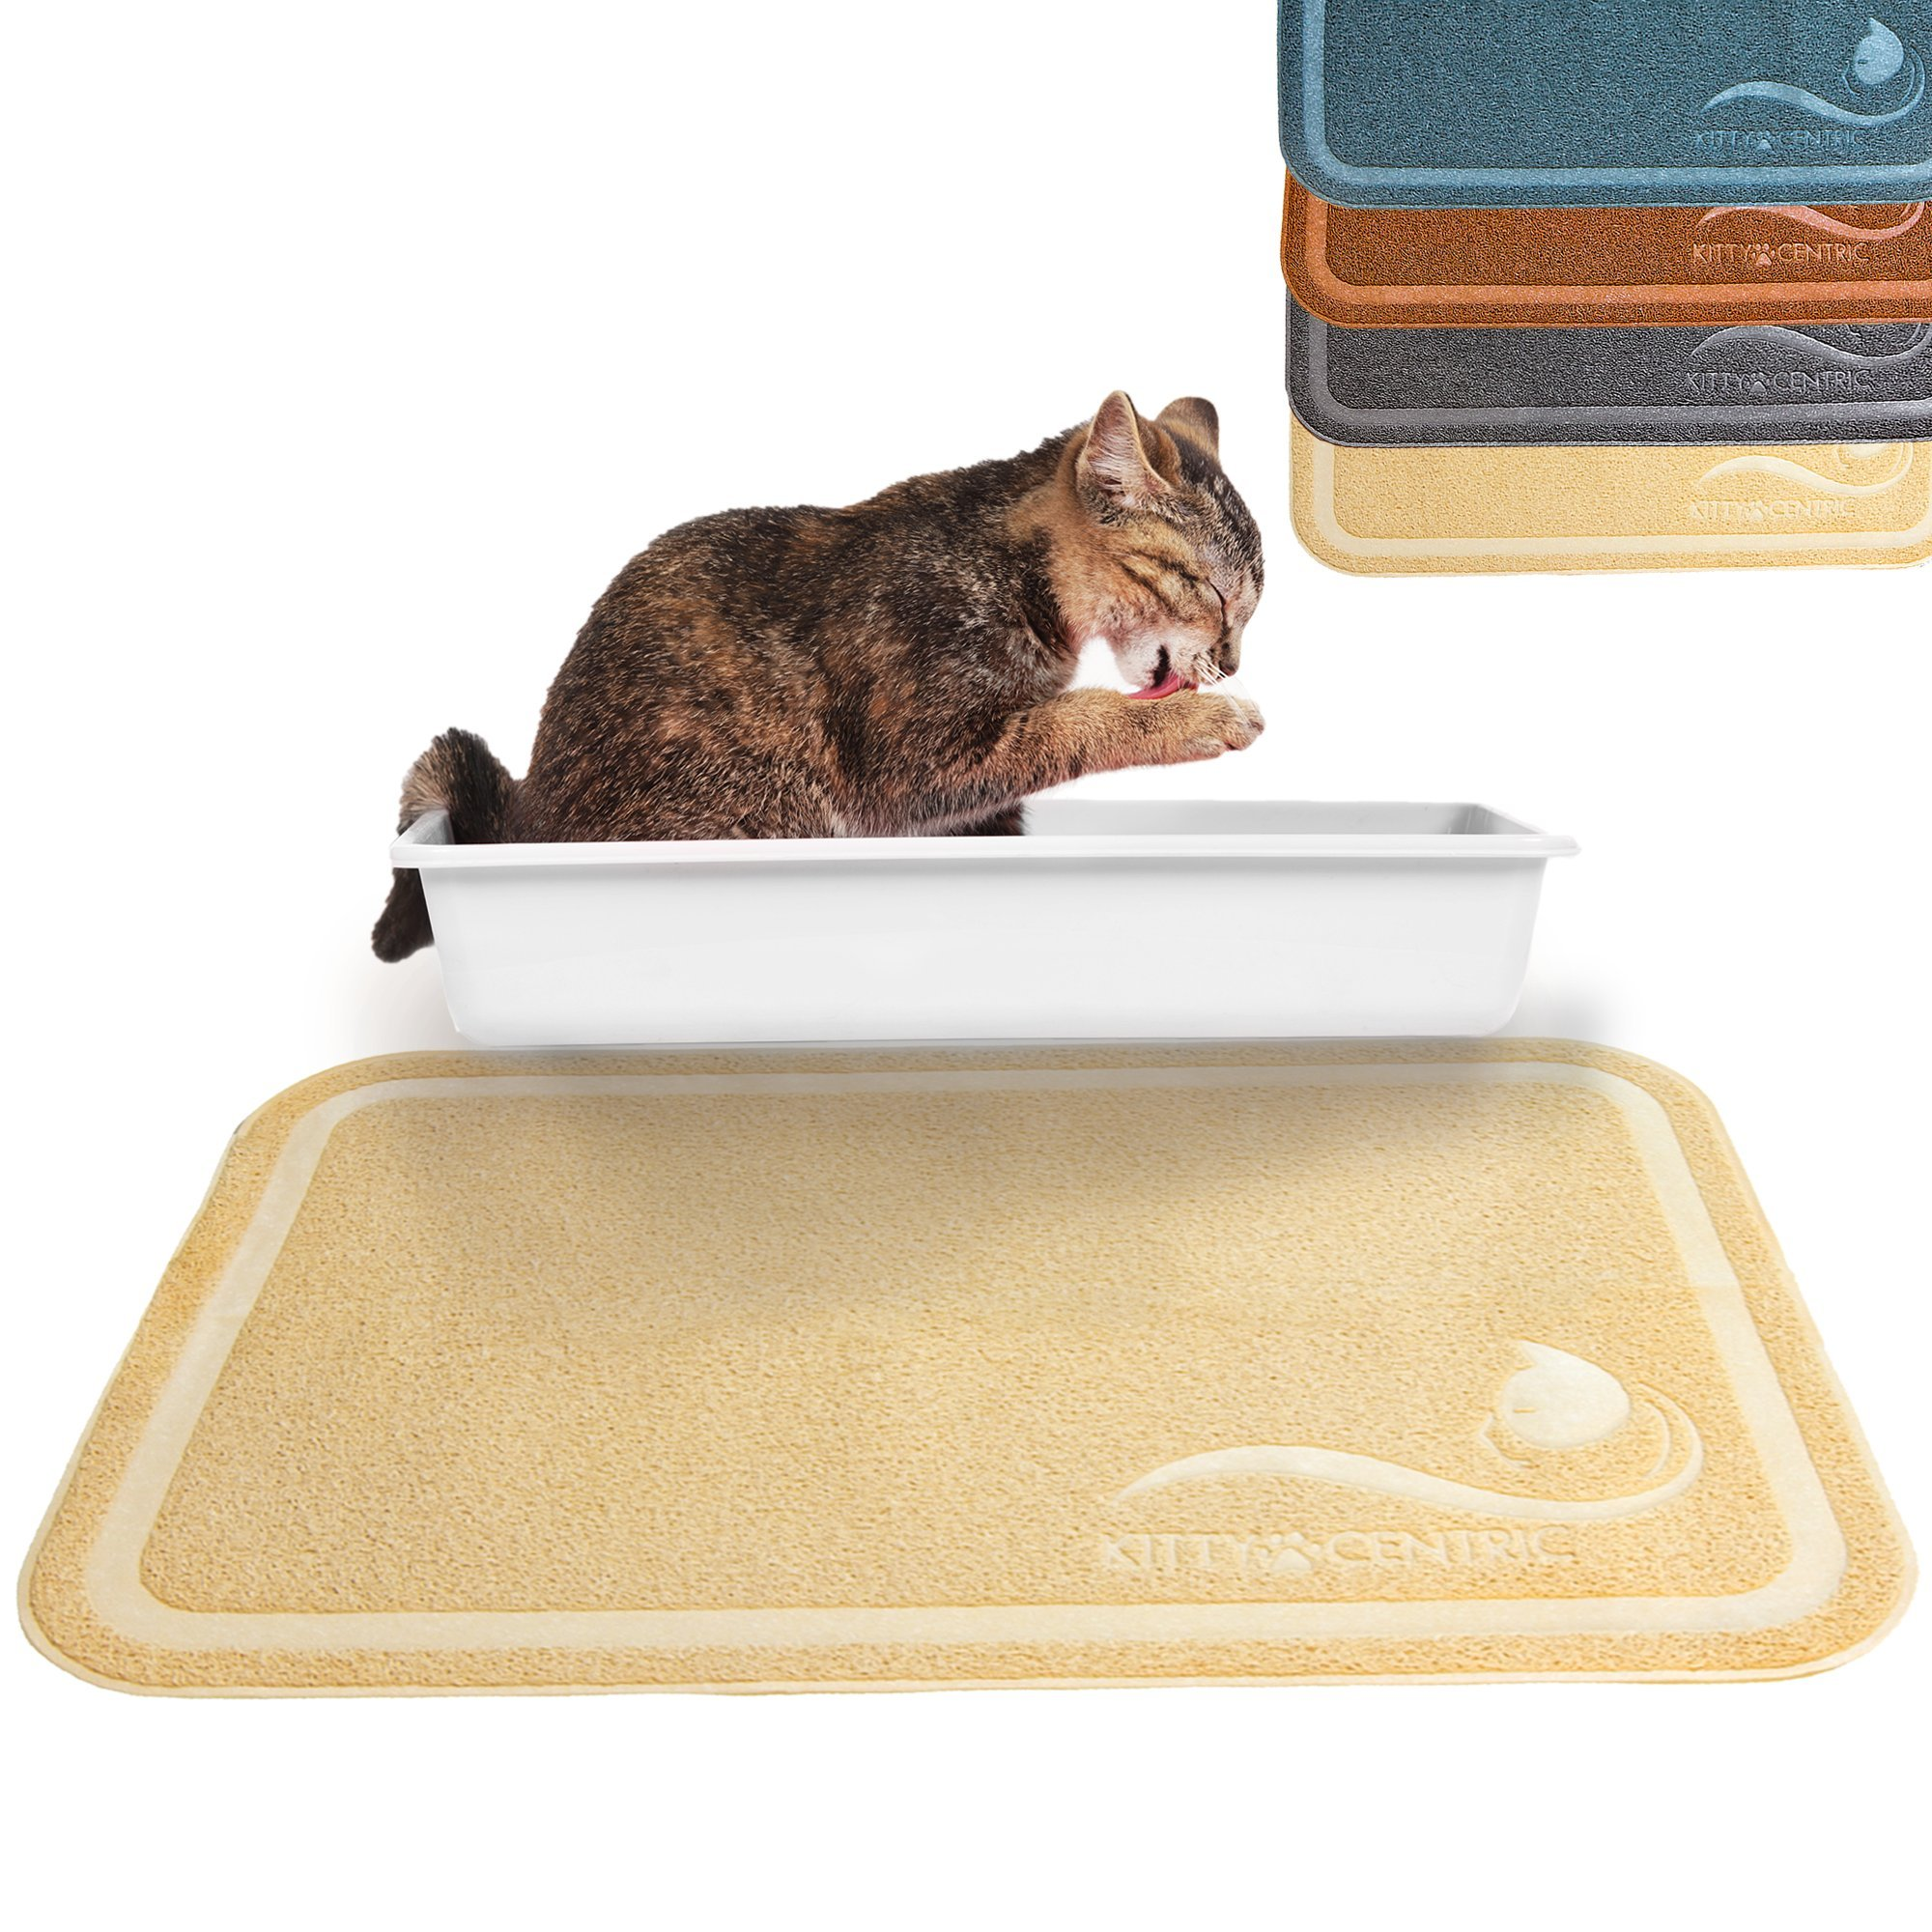 petco shop cat anti accessories touch mats so trapper boxes category carpets petcostore en mat center soft box and phresh litter tracking